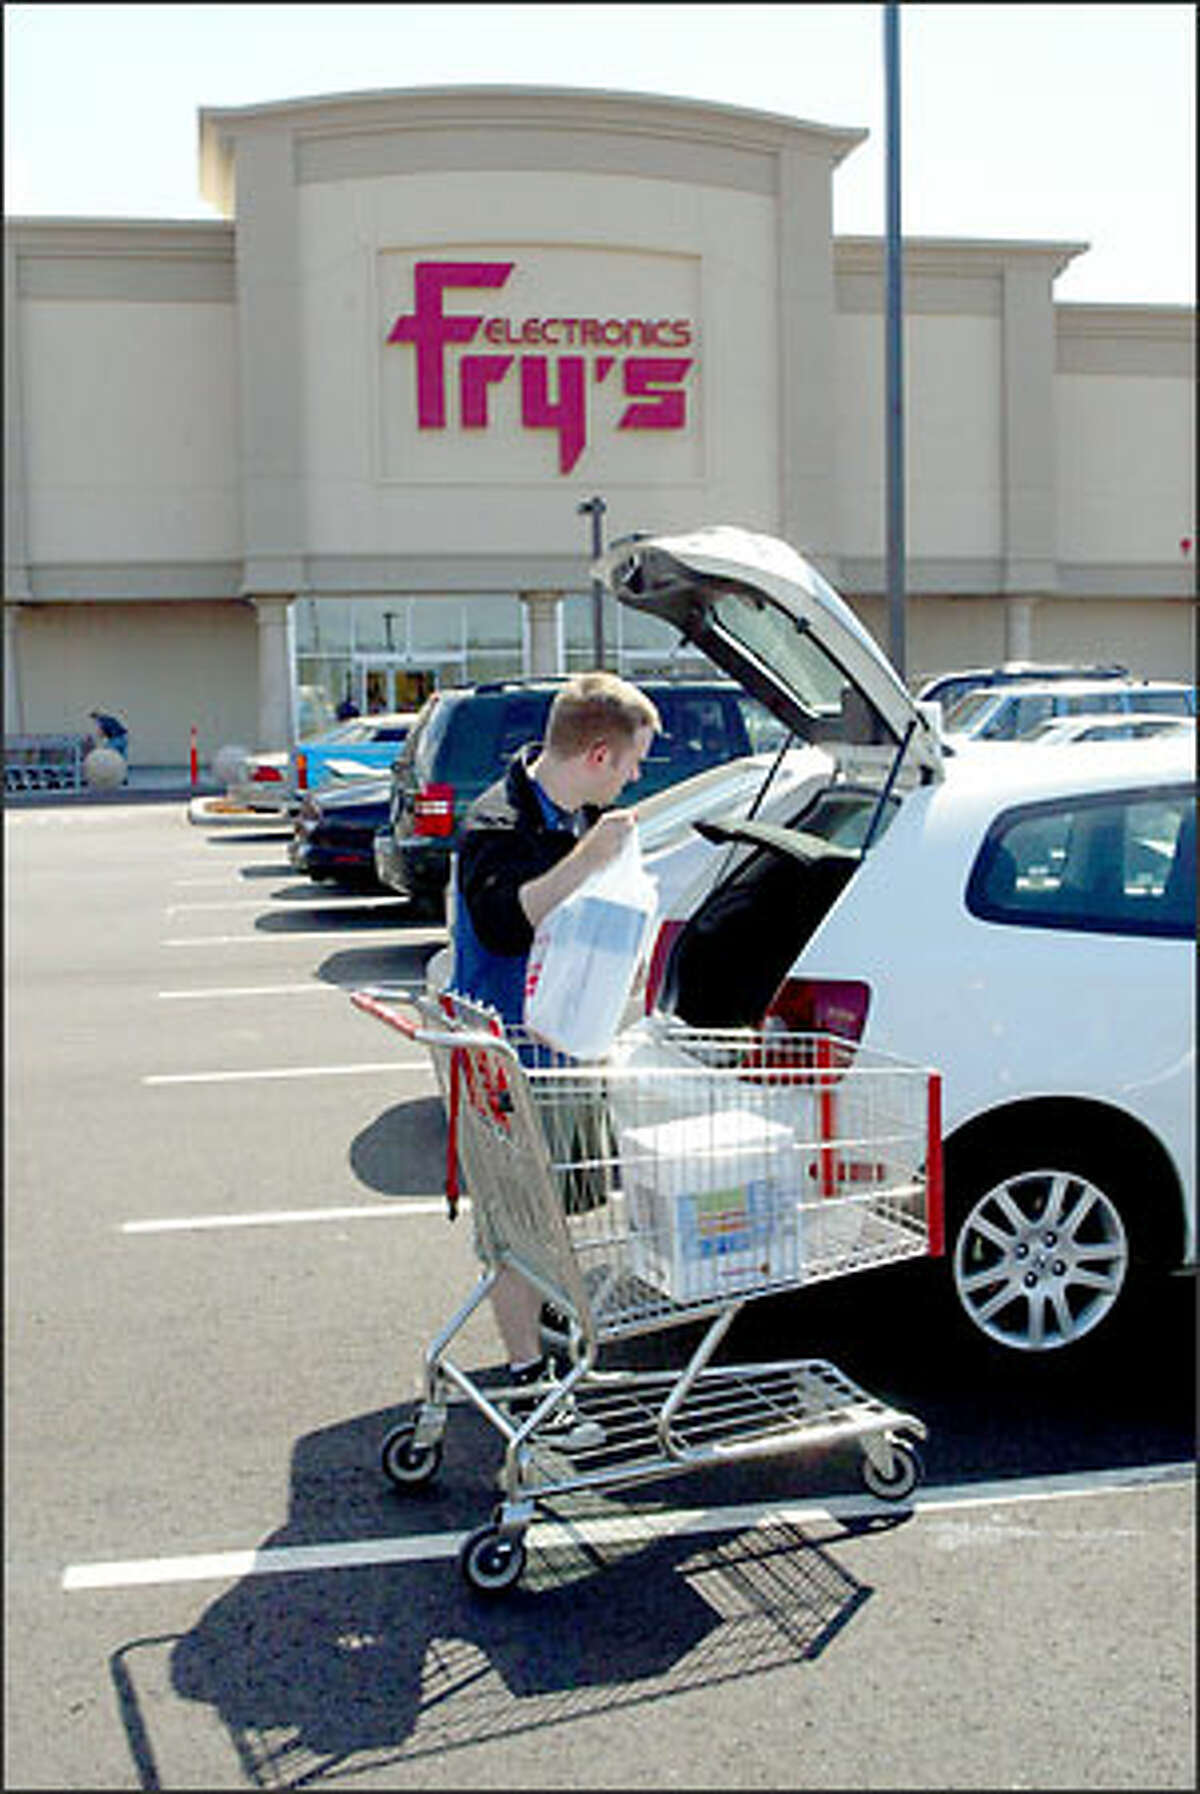 Evan Stoner of West Seattle stocks up at the new Fry's Electronics in Renton. He spent about $300 yesterday at the store, which just opened at 800 Garden Ave. N. It carries computer gear and consumer electronics.